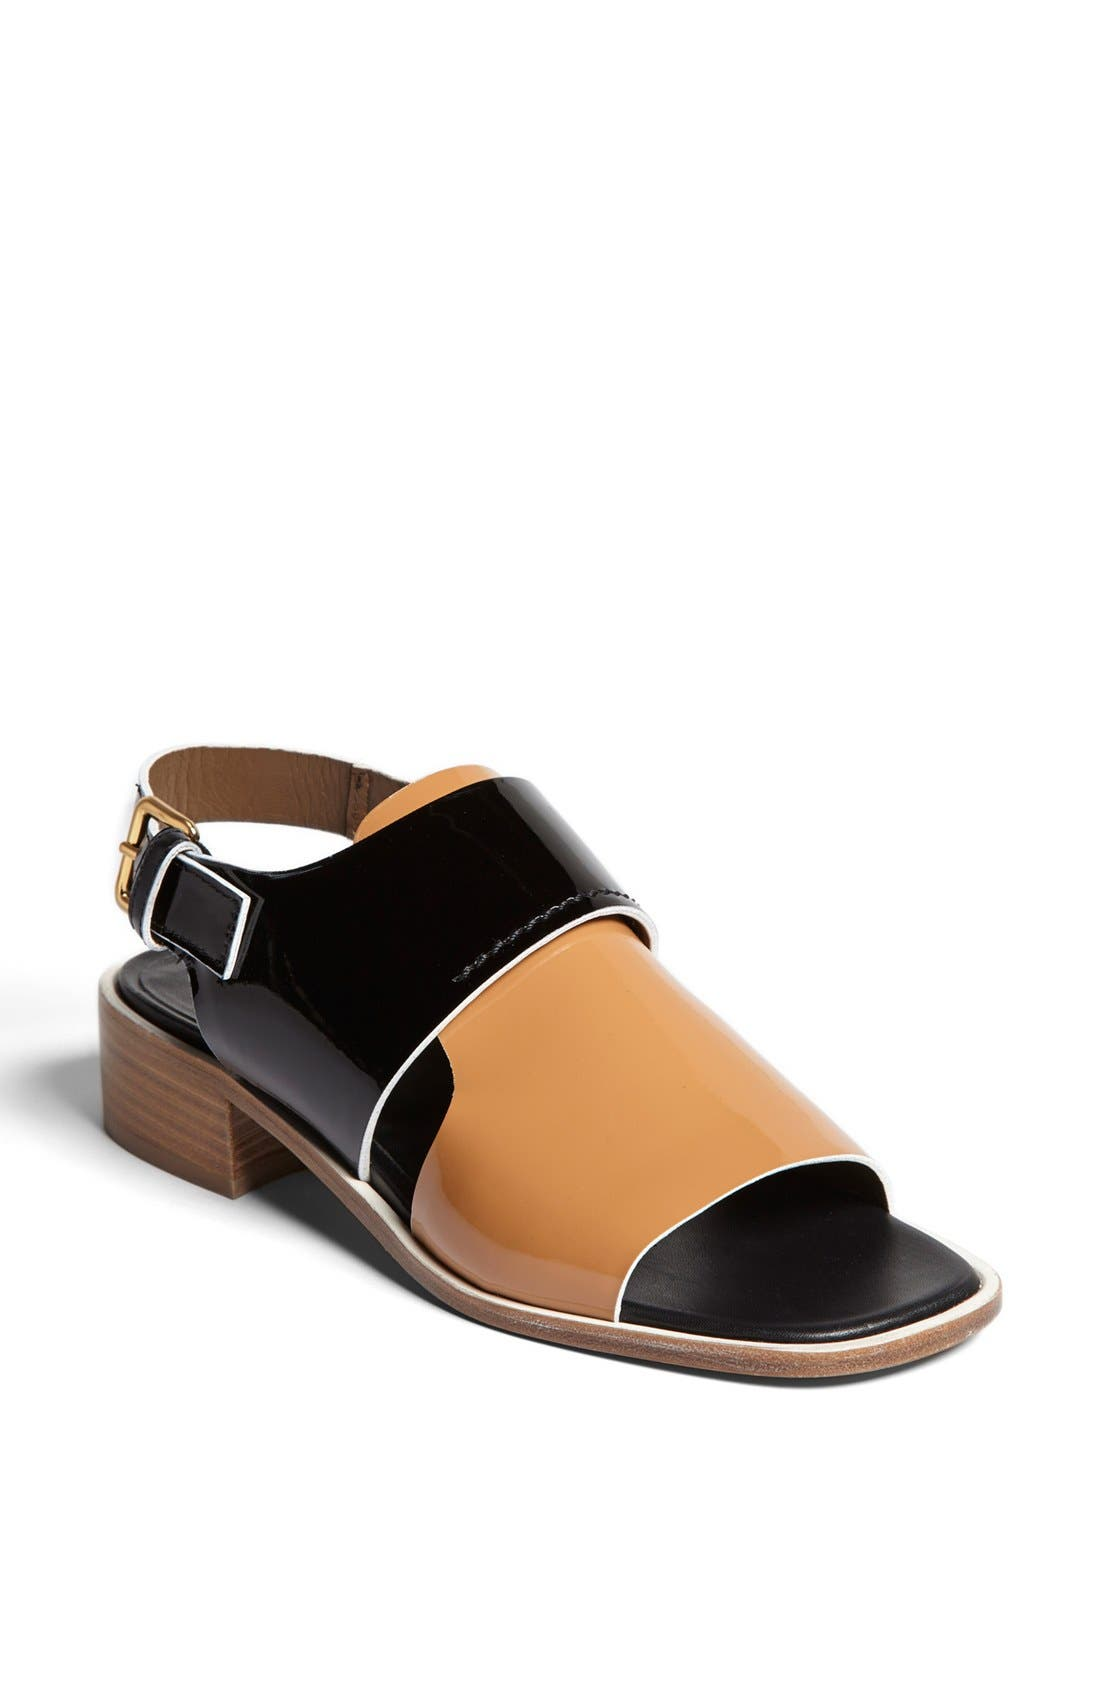 Alternate Image 1 Selected - Marni Slingback Sandal